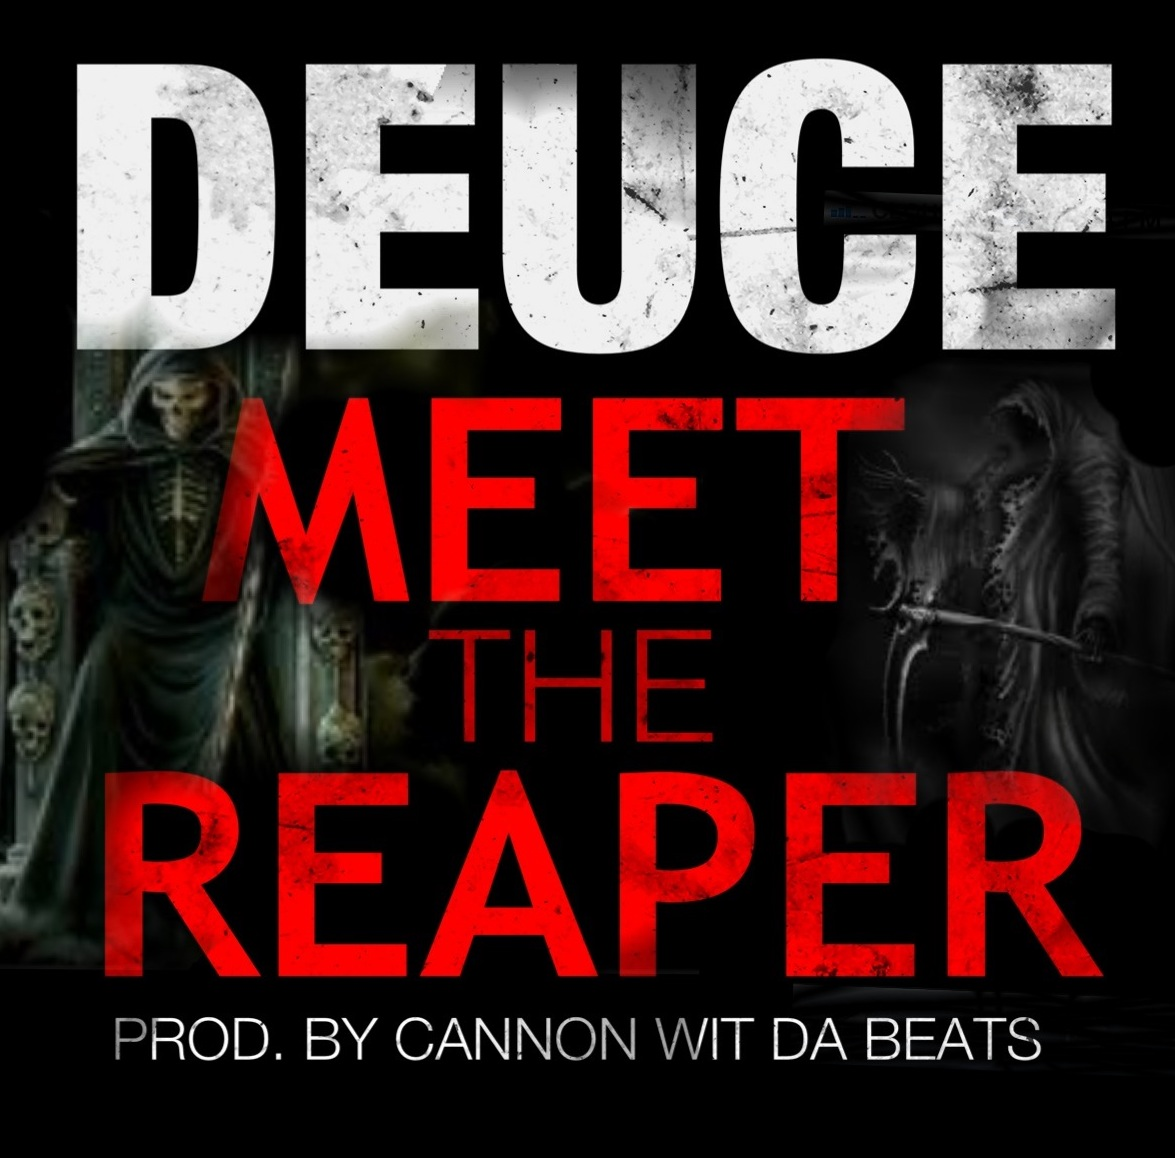 Deuce - Mee The Reaper (Prod by Cannon Wit Da Beats)